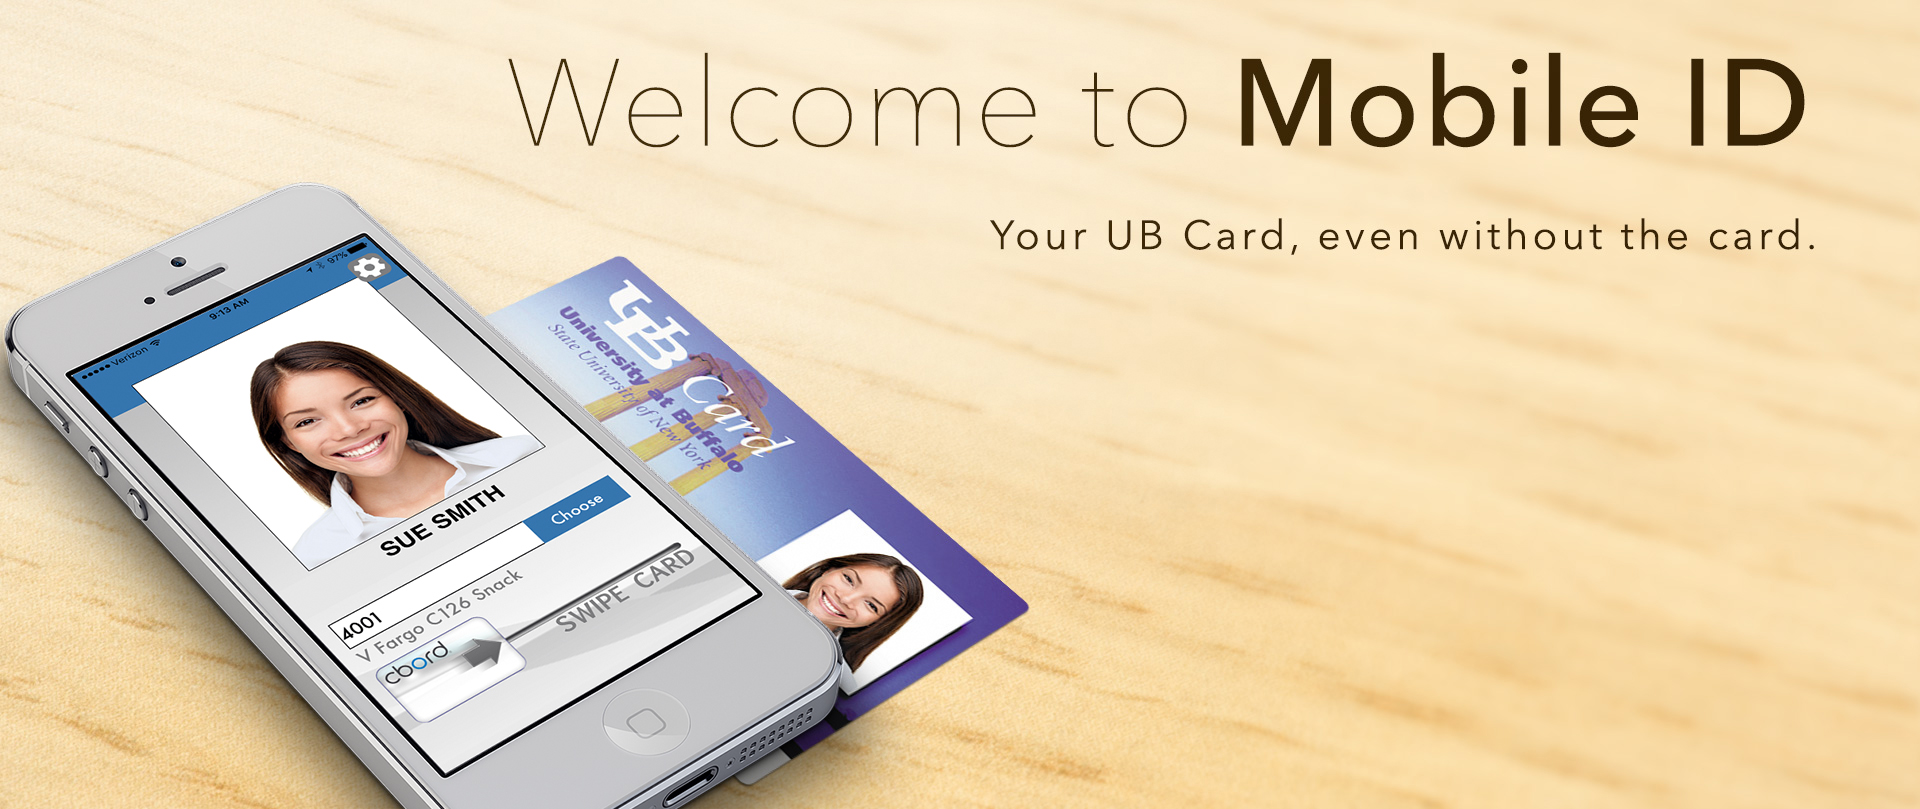 Welcome to Mobile ID. Your UB Card, even without the card.